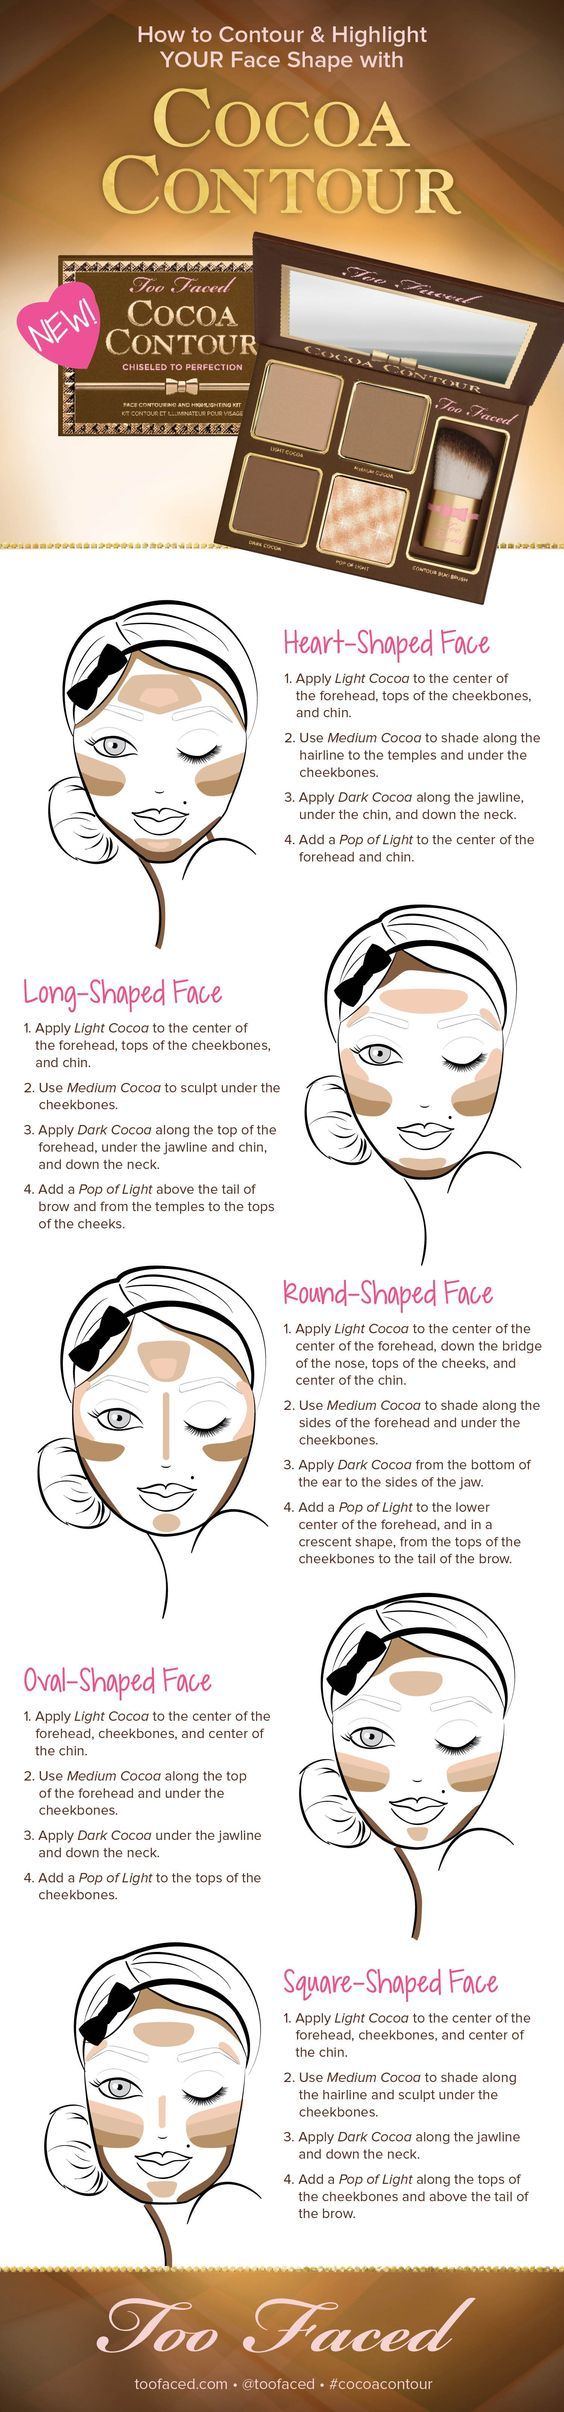 Contouring to your face shape with Too Faced Cocoa Contour Kit: